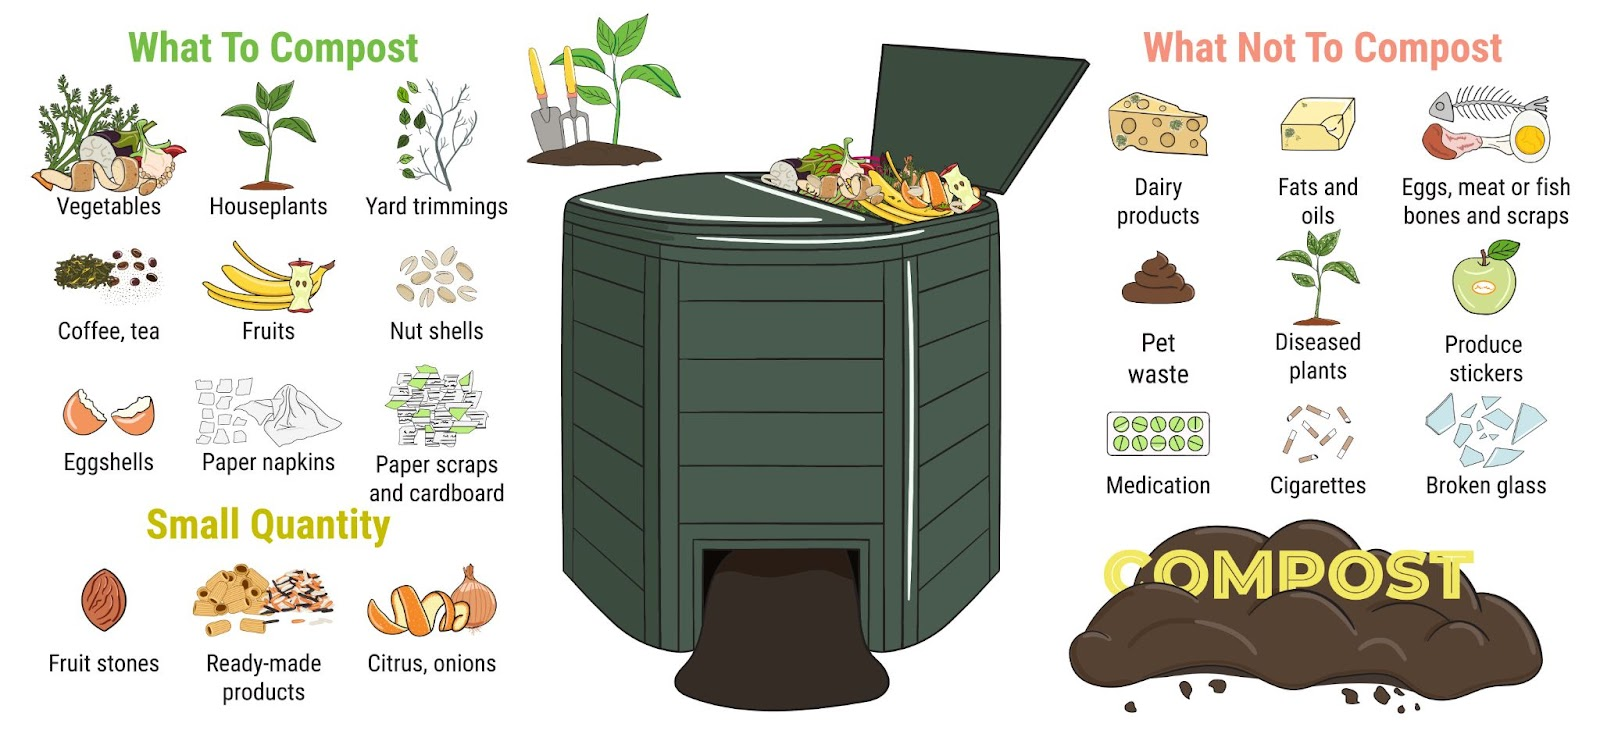 Graphic showing what things you can and cannot compost.